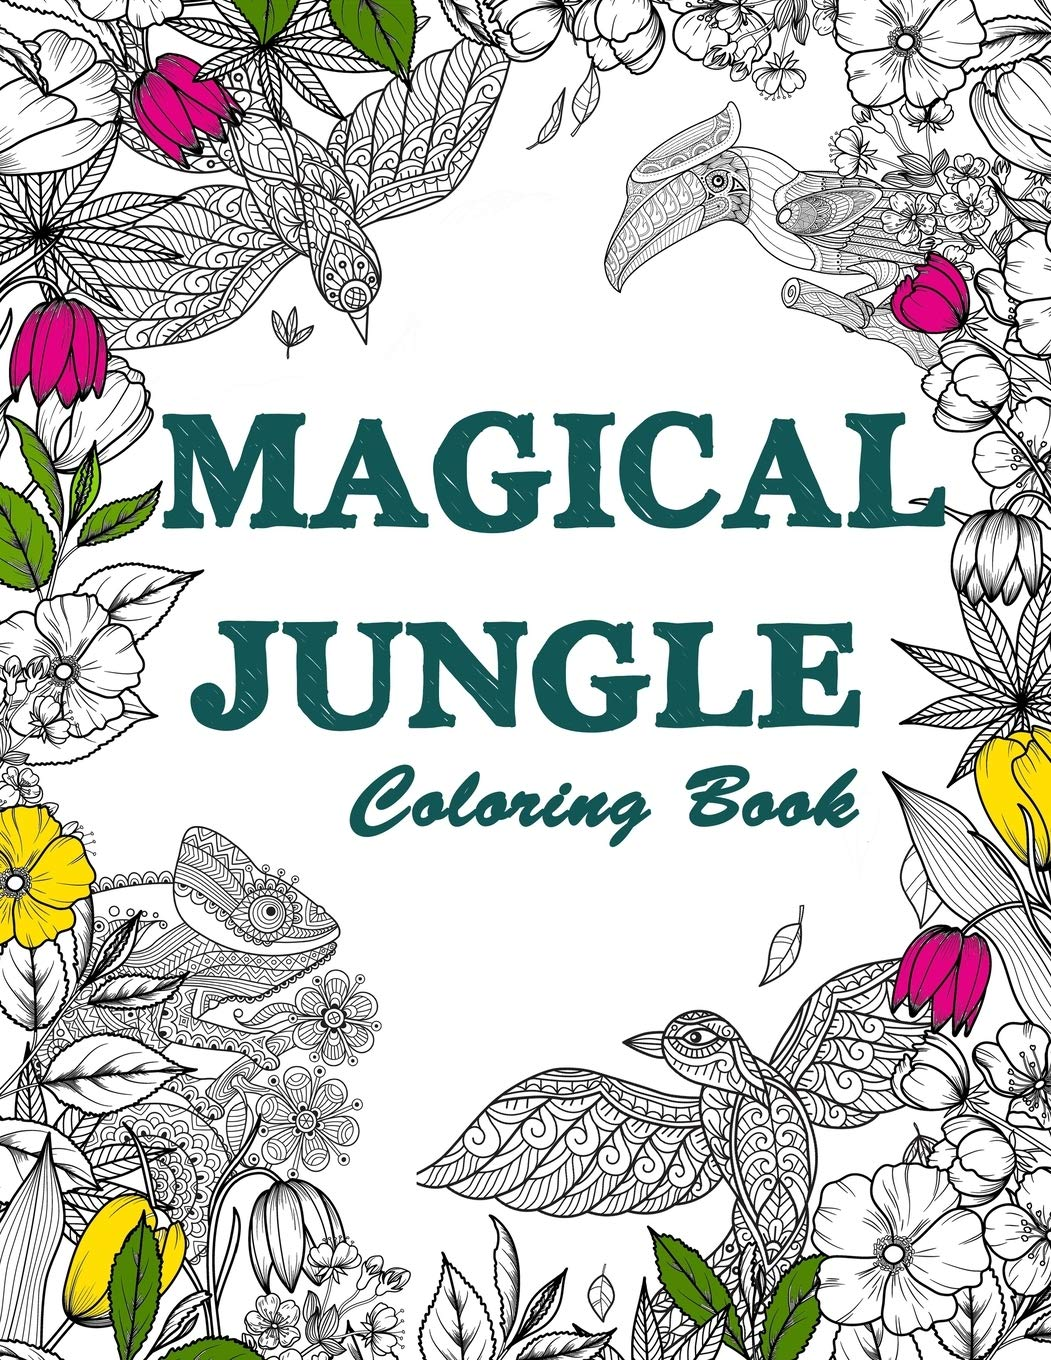 Amazon Com Magical Jungle Coloring Book The Magic Jungle Jungle Animals Mysterious Nature Scenes Relaxation And Mindfulness Coloring Books For Adults Adult Coloring Books 9798628693216 Riddles Harry M Books